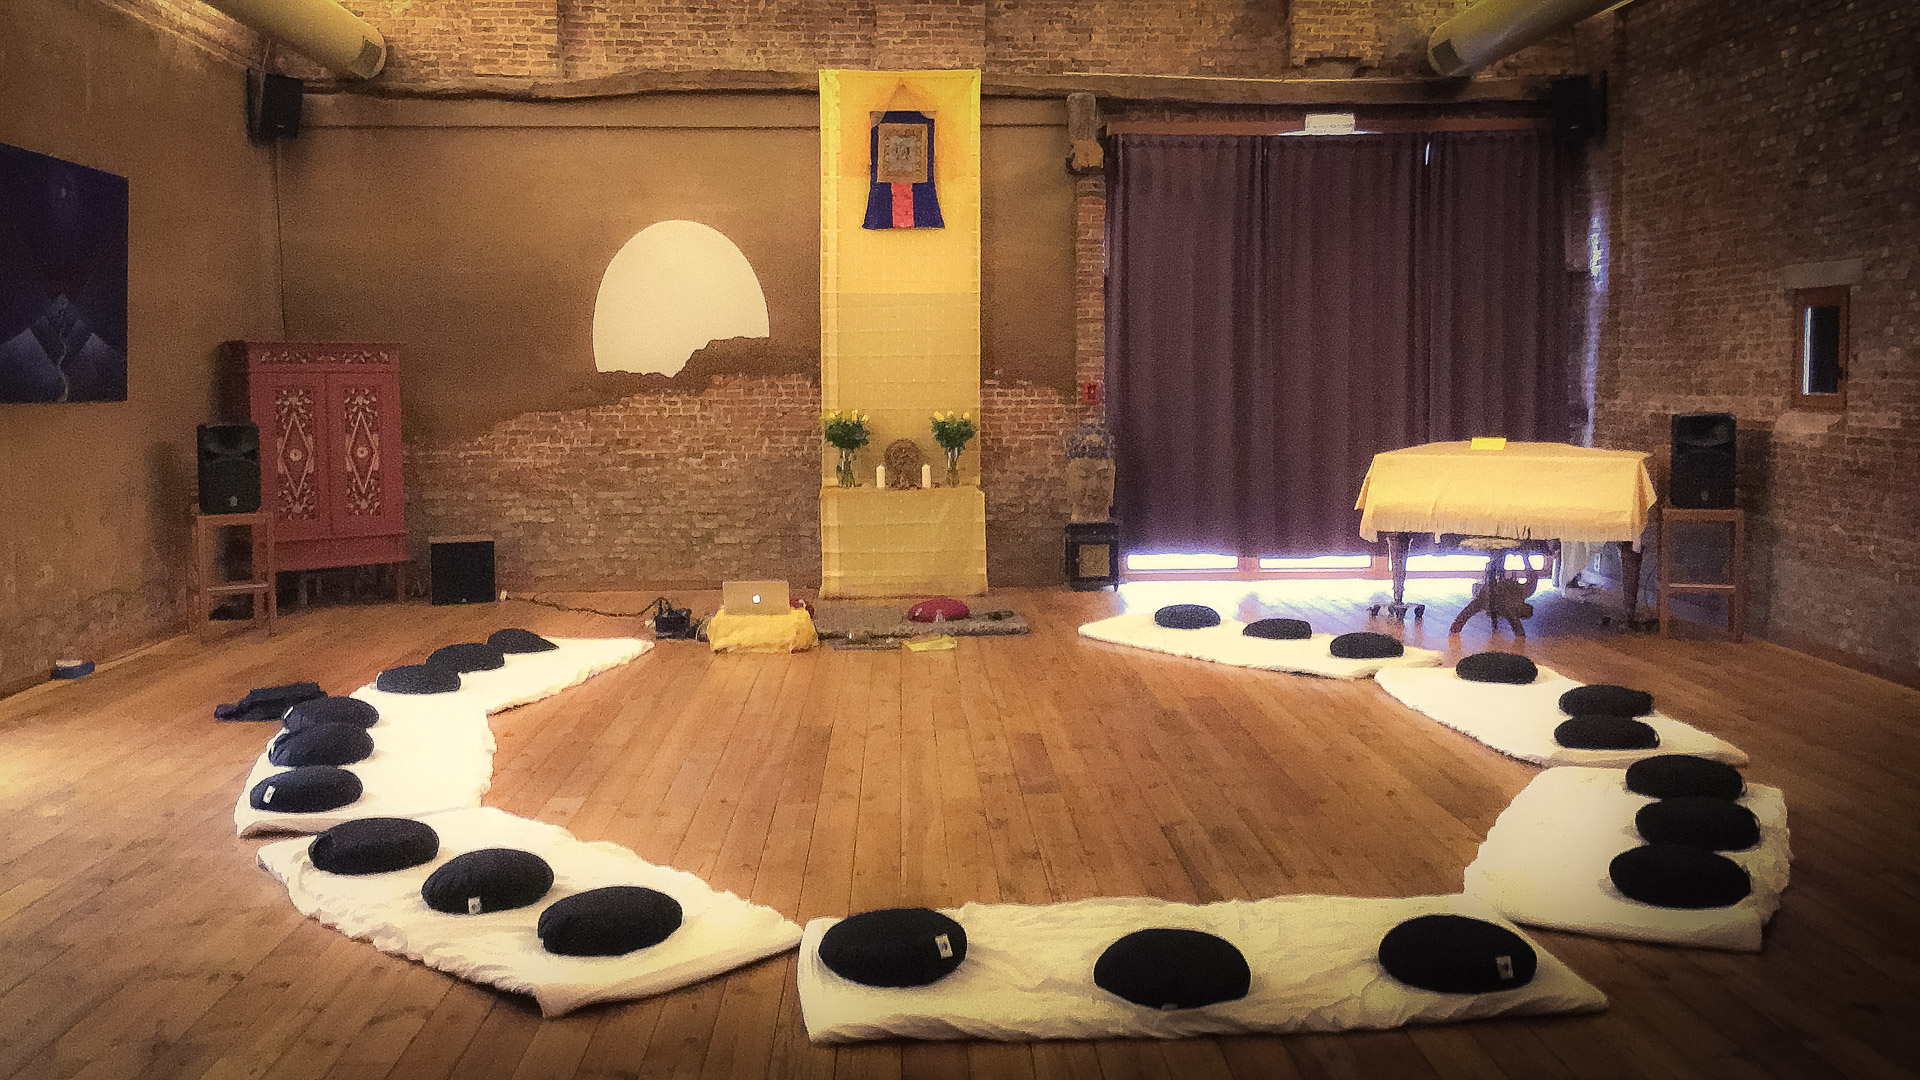 Tantra meditation room ready for tantric seminar in Koningsteen, Belgium